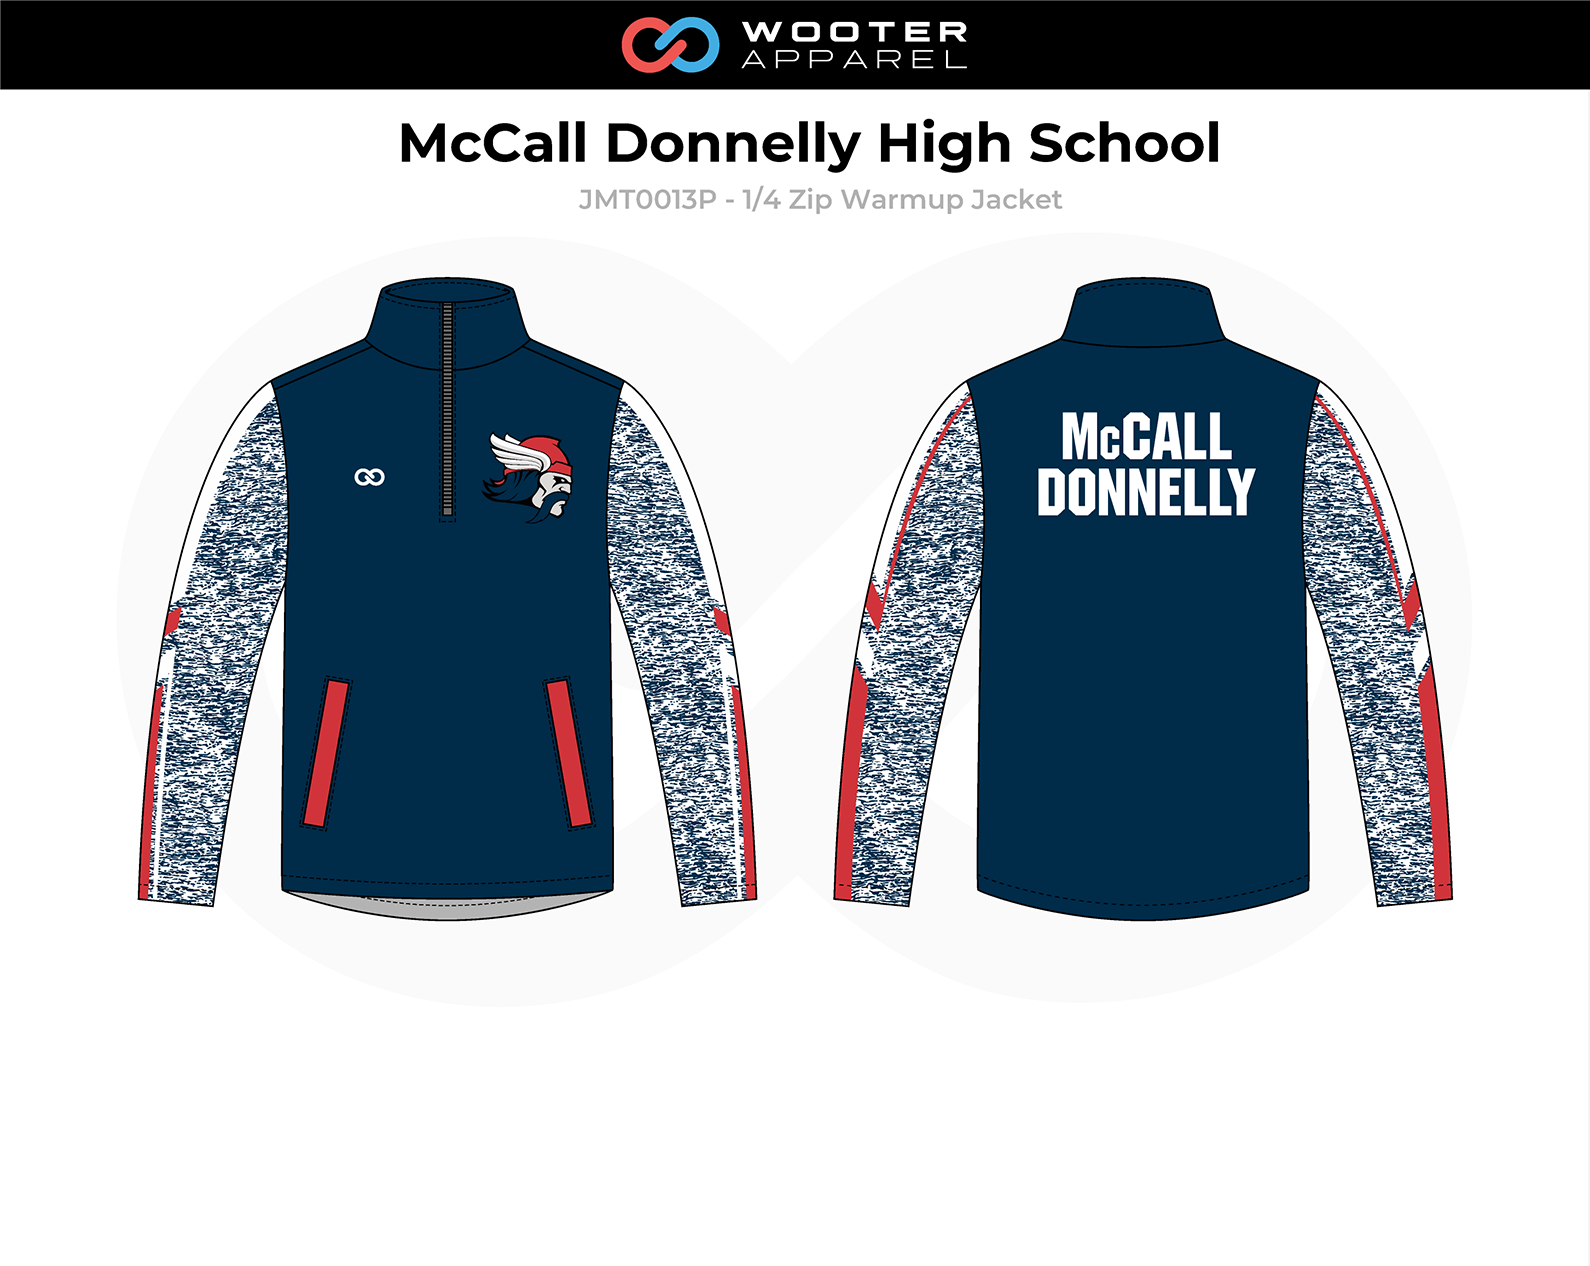 2018-10-25 McCall Donnelly High School Basketball (Panthers) Warmup Jacket (pattern sleeves).png